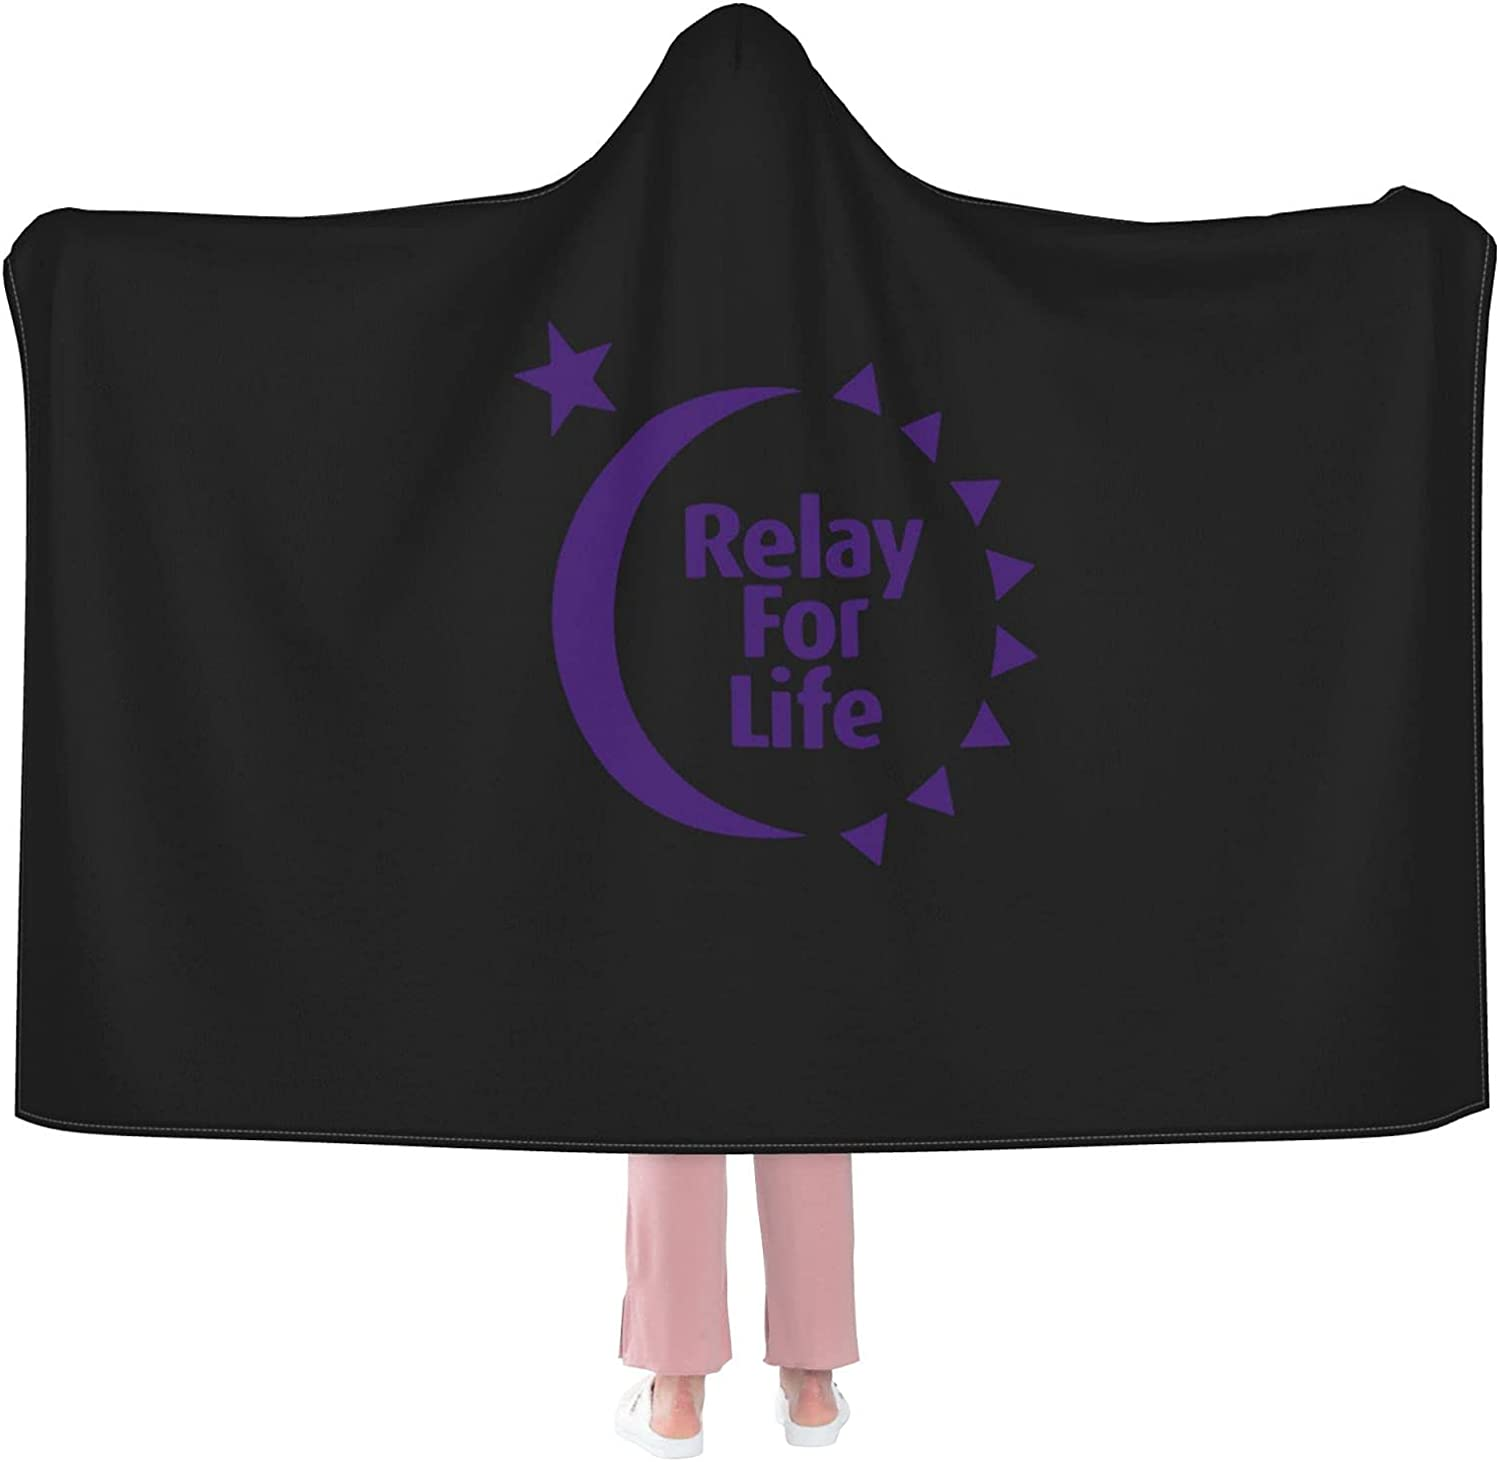 Relay for Life Hooded Houston Mall Blanket Throw Reservation Plush B Large